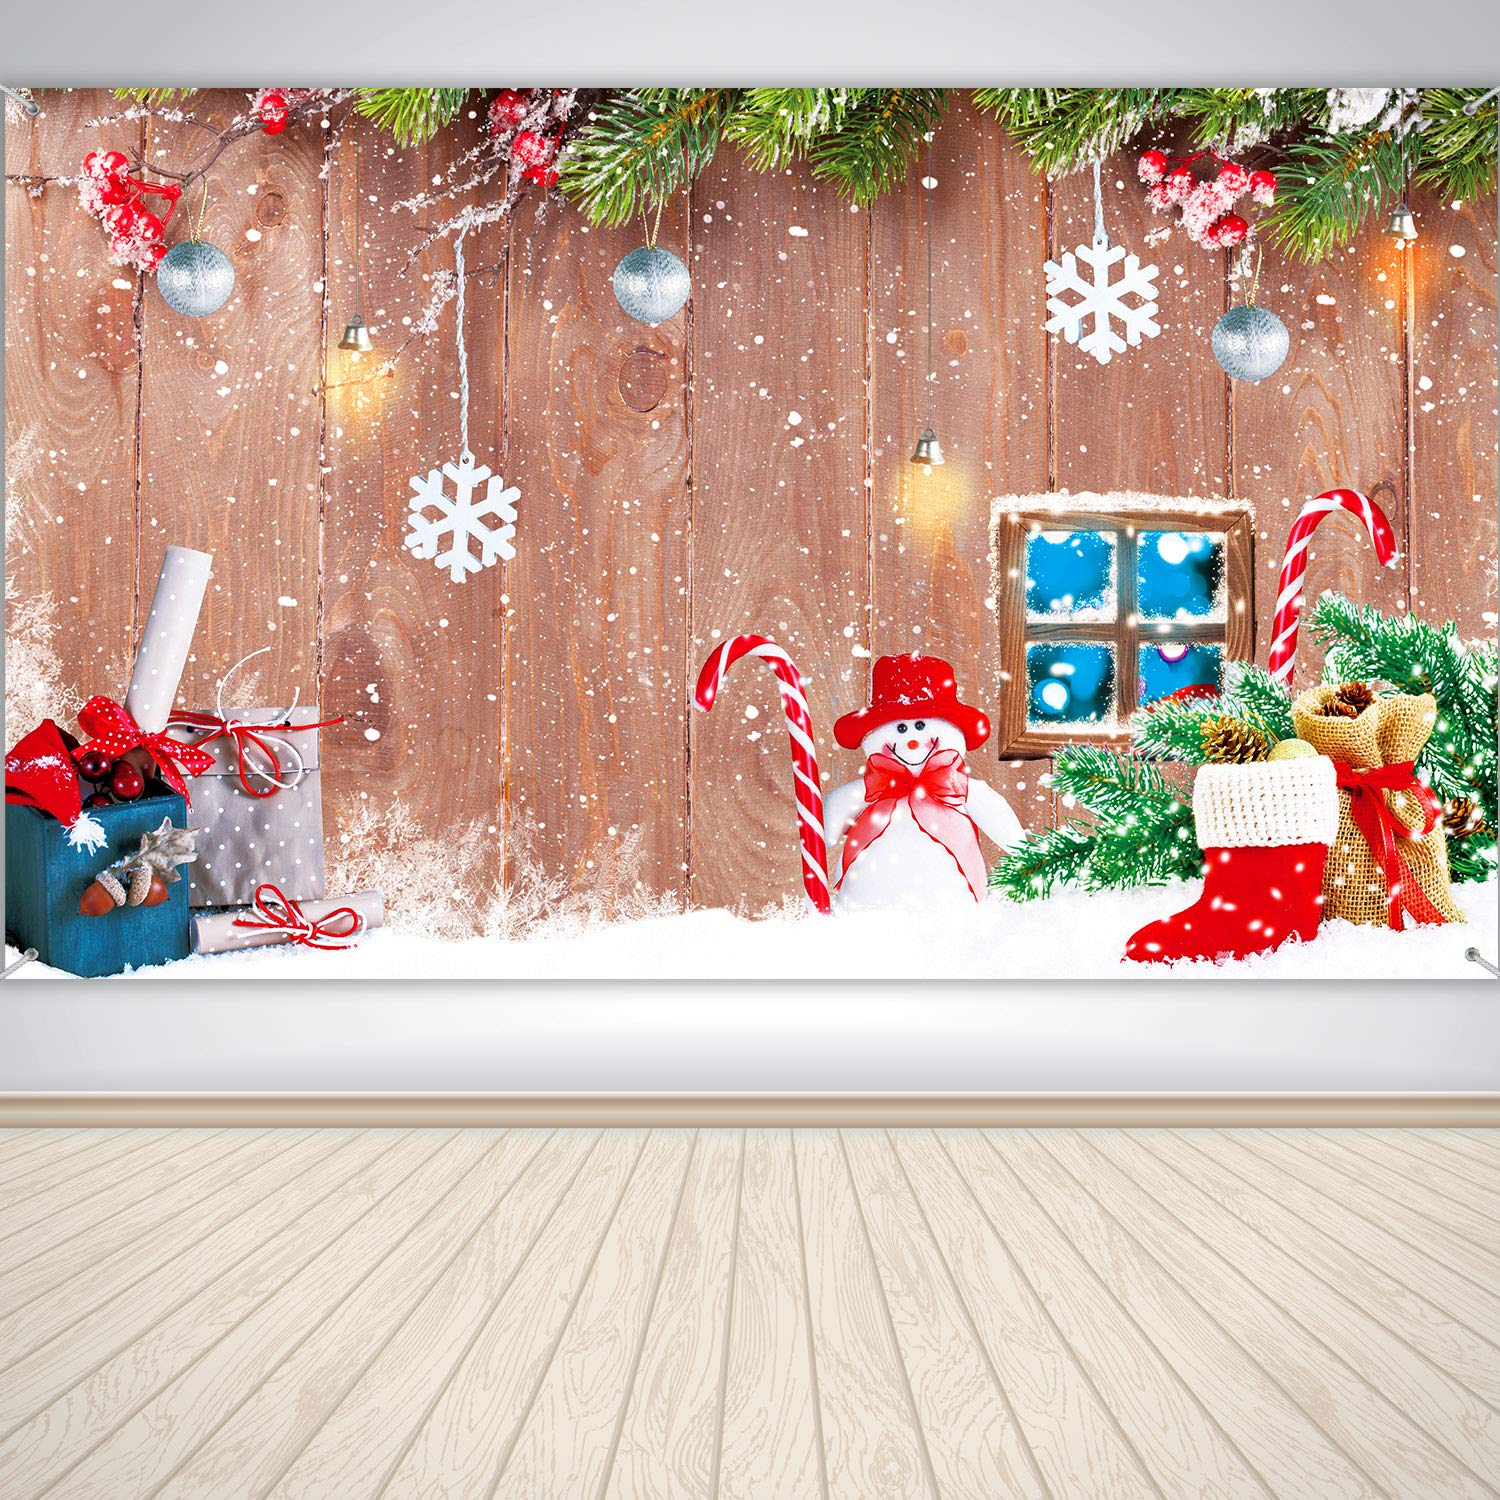 Christmas Holiday Winter Home Banner Wood and Snowman Background Banner 72.8 x 43.3 Inch Large Wood and Snowman Design Photo Backdrop for Winter Home Party Christmas Party Decoration Supplies